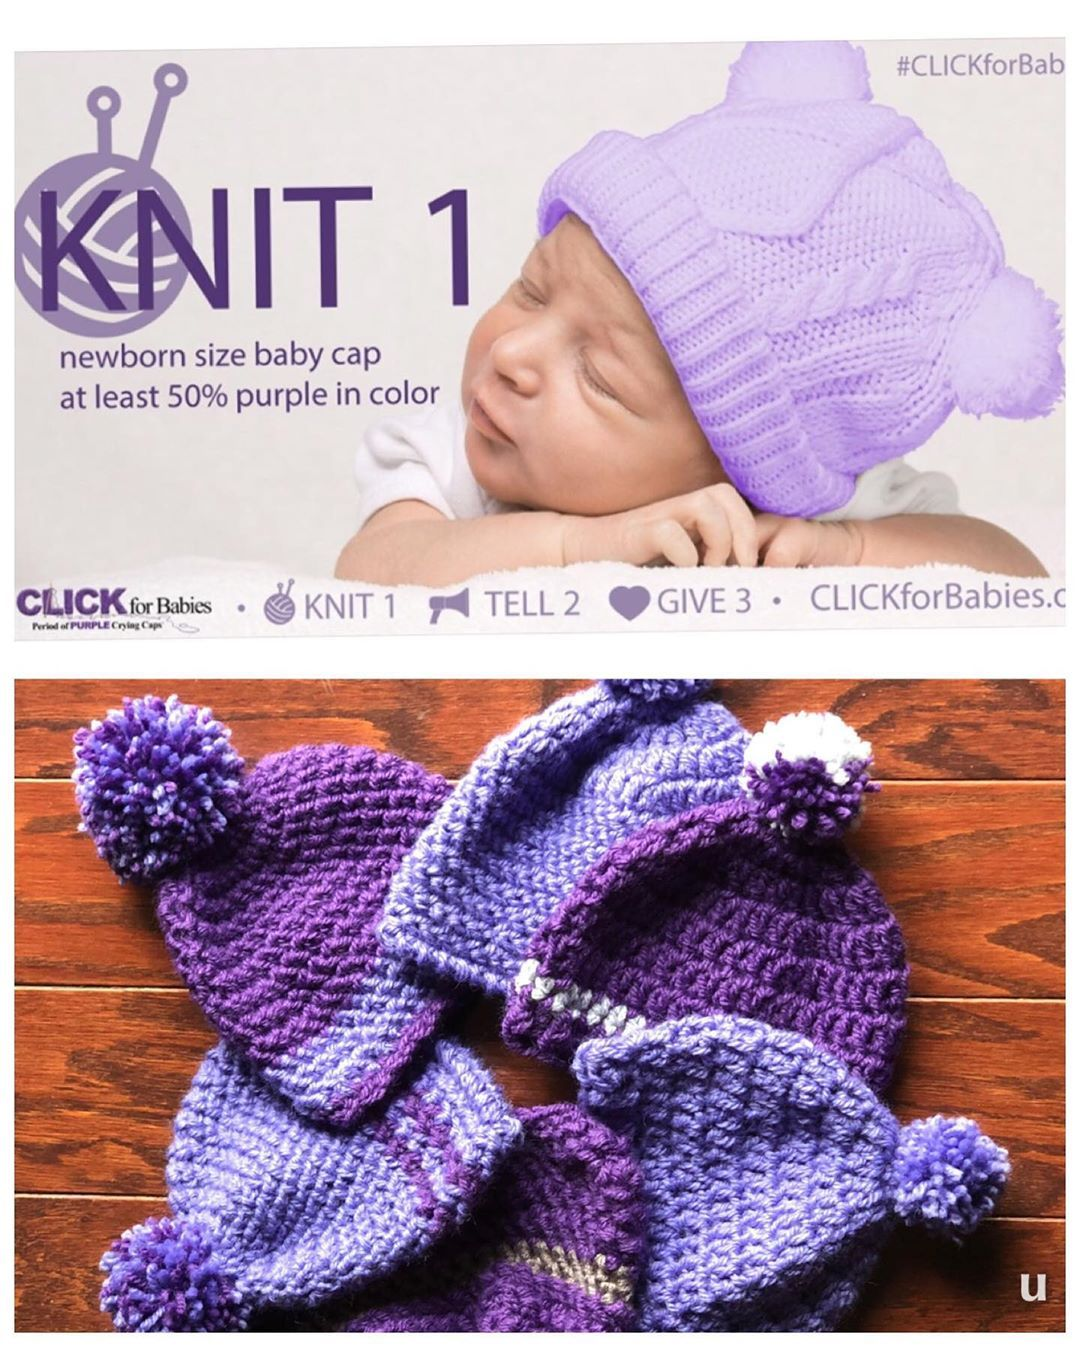 Clickforbabies Luneur Baby Cap Baby Knitting Kids Hats